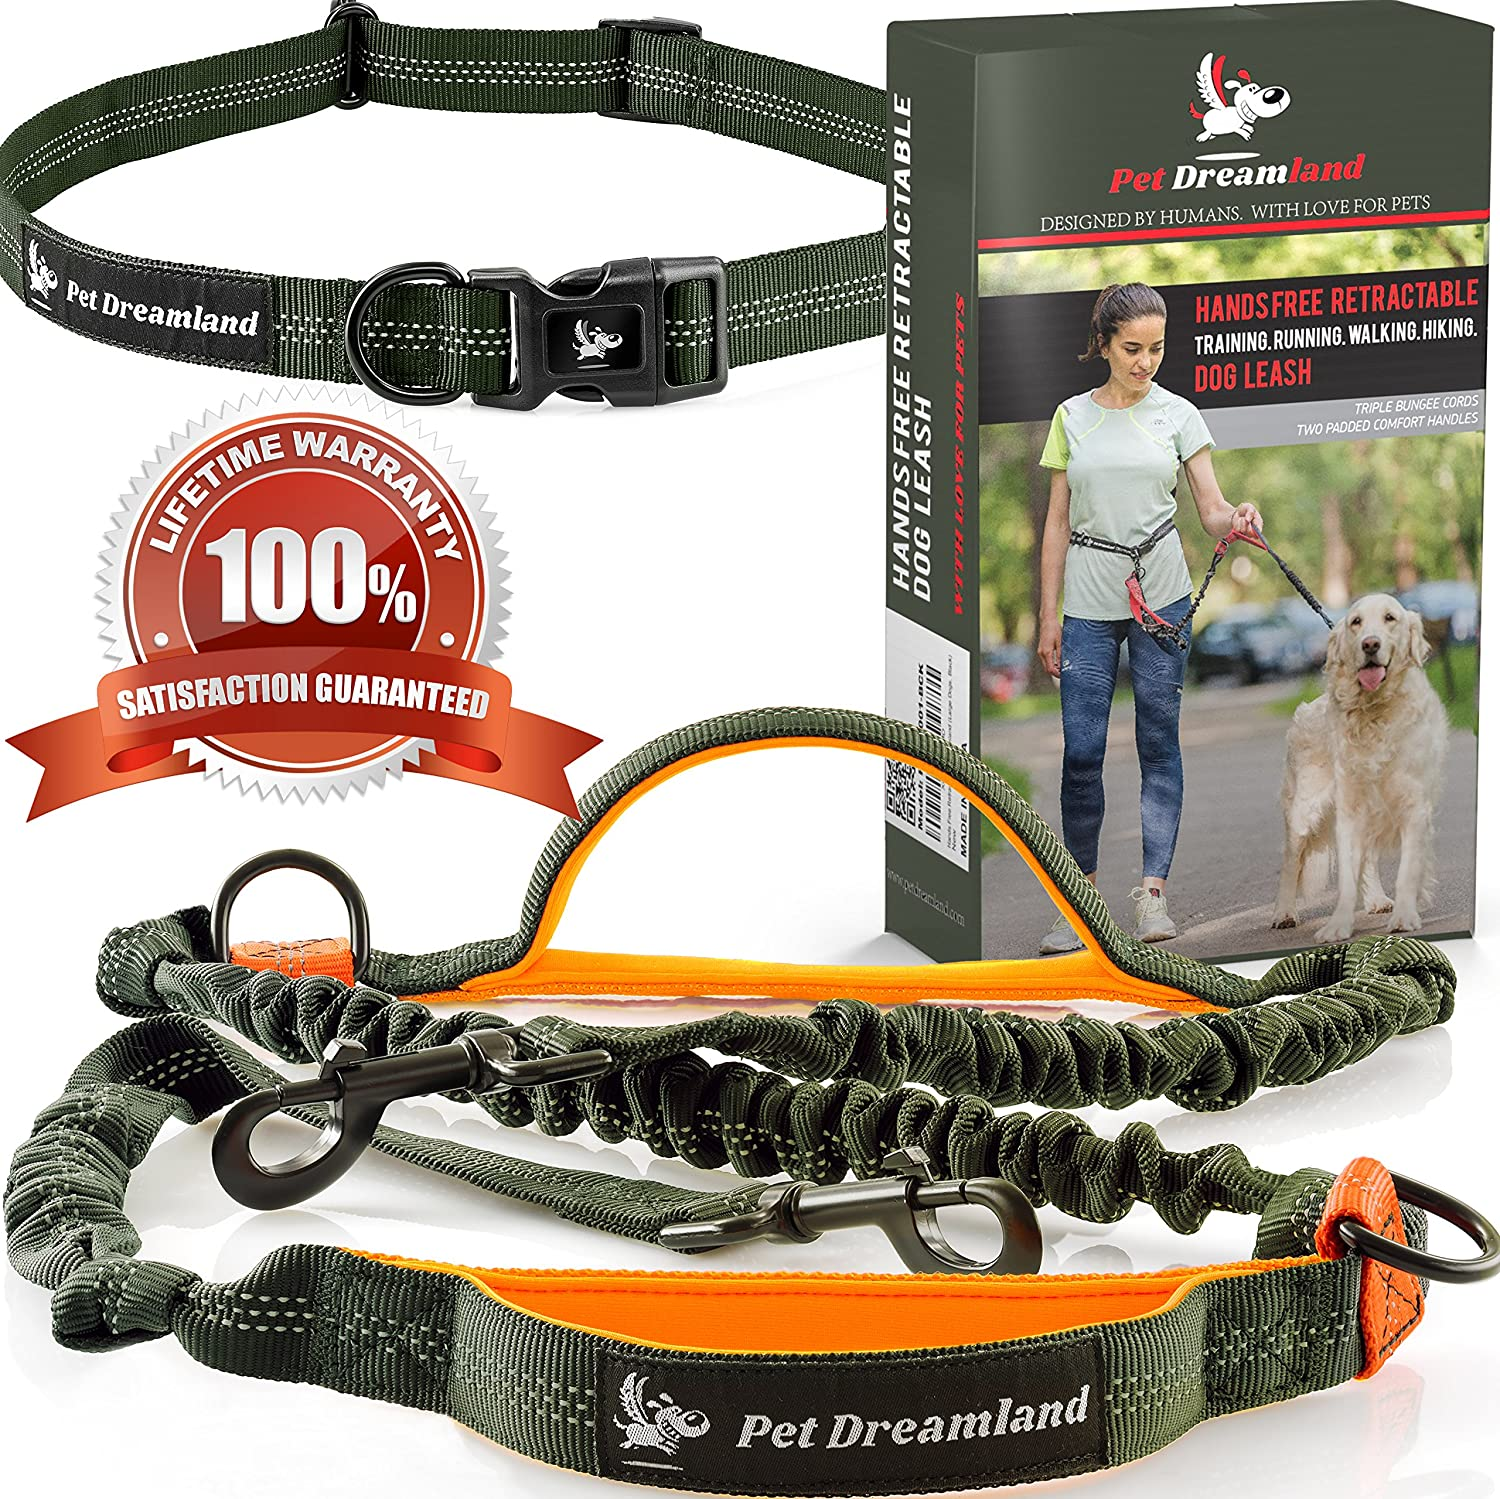 The Best Dog Leashes For Hiking: Reviews & Buying Guide 18